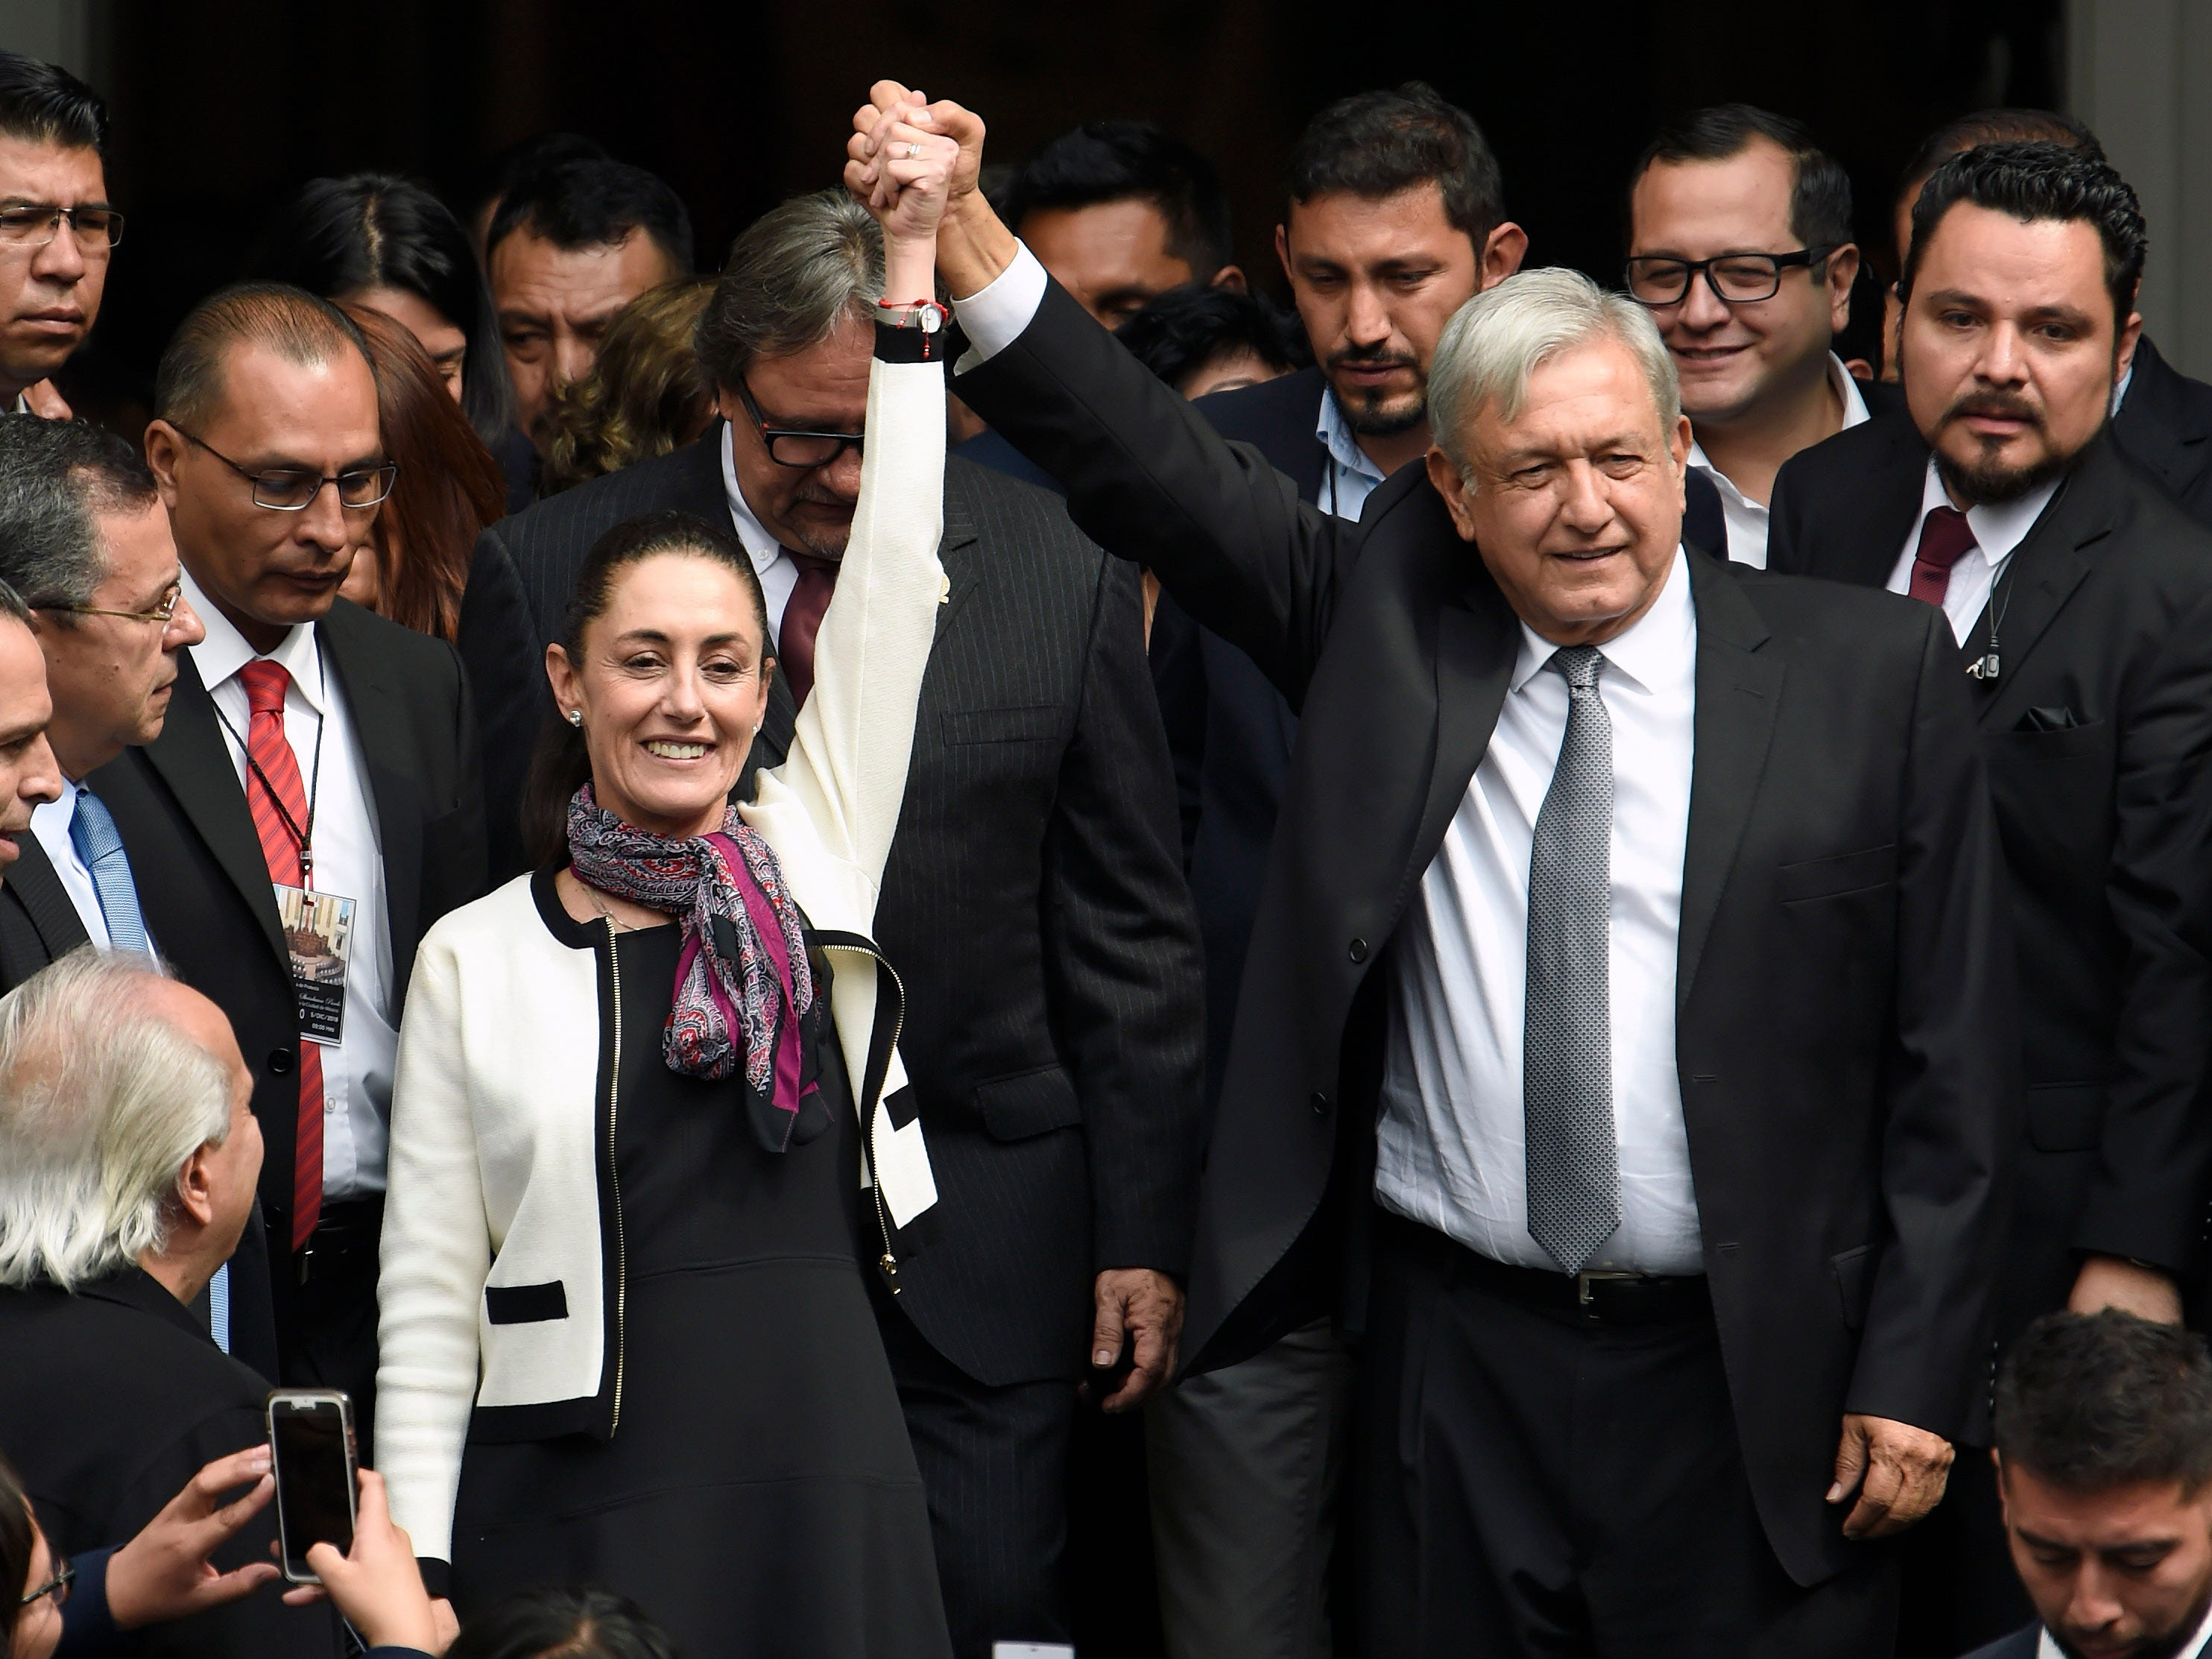 Mexican President Andres Manuel Lopez Obrador raises the hand of Mexico City's new governor, Claudia Sheinbaum, after her swearing-in ceremony at the local Congress in Mexico City on Dec. 5, 2018. Sheinbaum is the first woman to be elected governor of Mexico City.